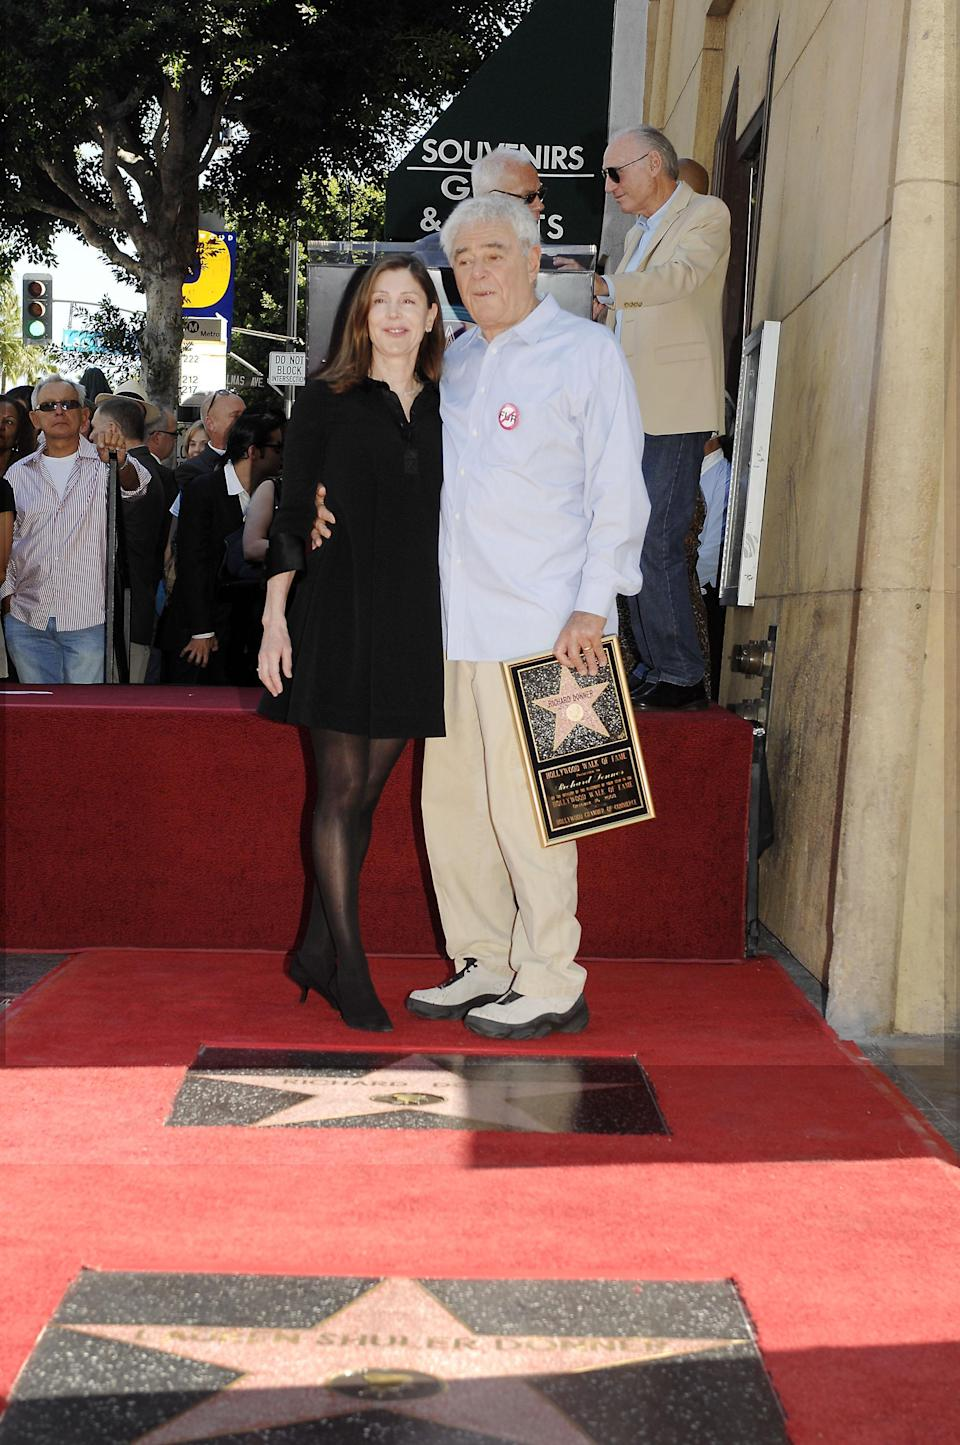 Lauren Schuler Donner, Richard Donner at the induction ceremony for Star on the Hollywood Walk of Fame for Richard Donner and Lauren Shuler Donner, Hollywood Boulevard, Hollywood, CA, October 16, 2008. Photo by: Michael Germana/Everett Collection - Credit: Everett Collection